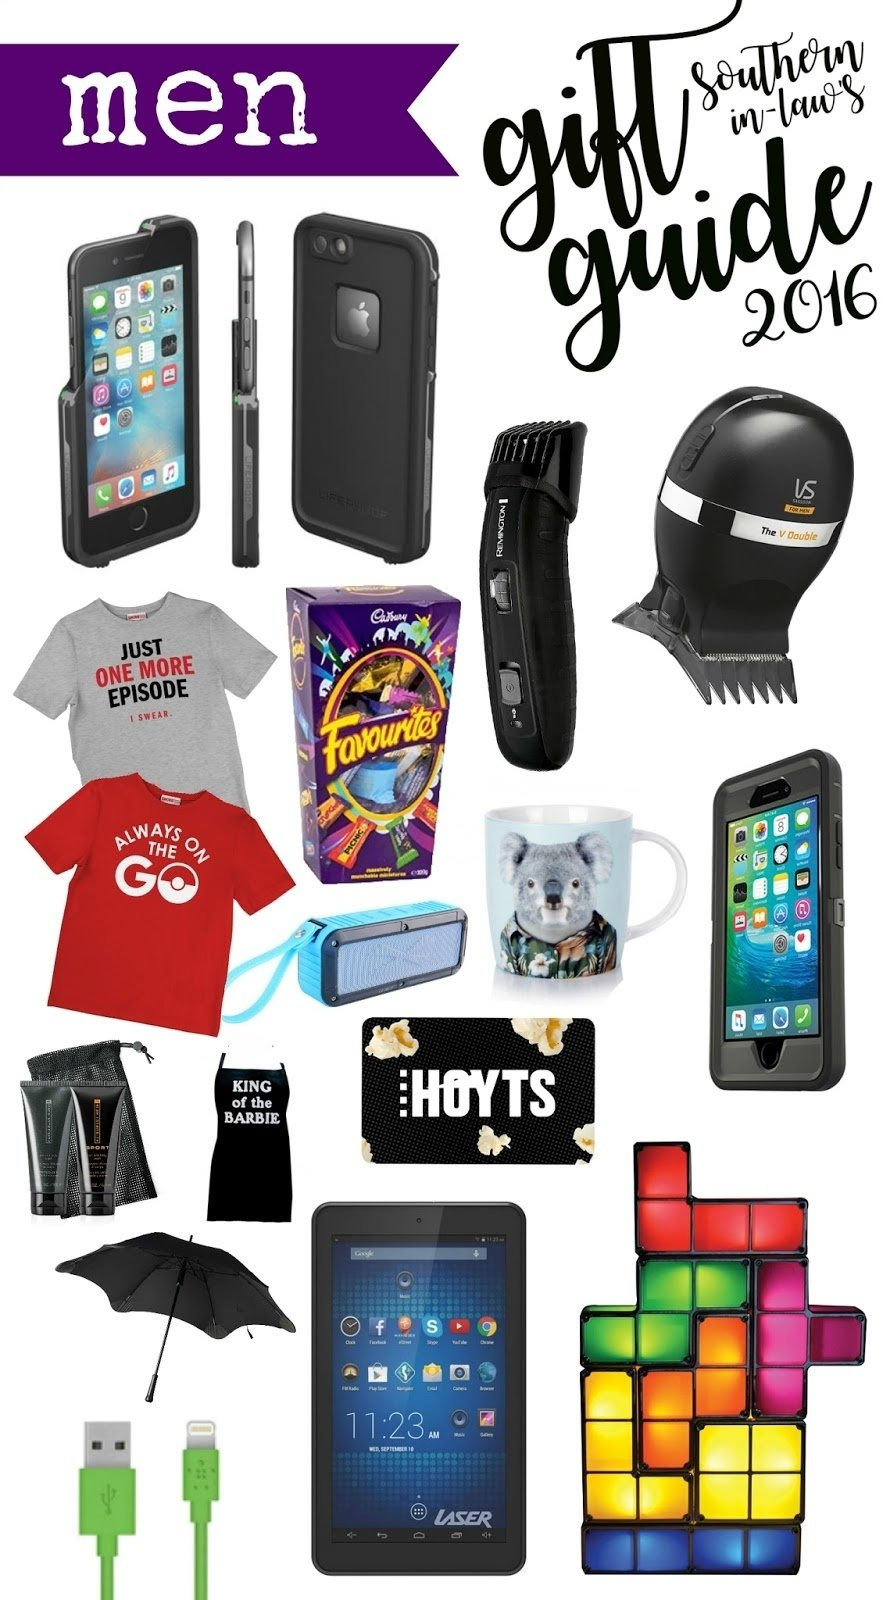 10 Pretty Christmas Gifts Ideas For Men southern in law 2016 mens christmas gift guide 8 2020